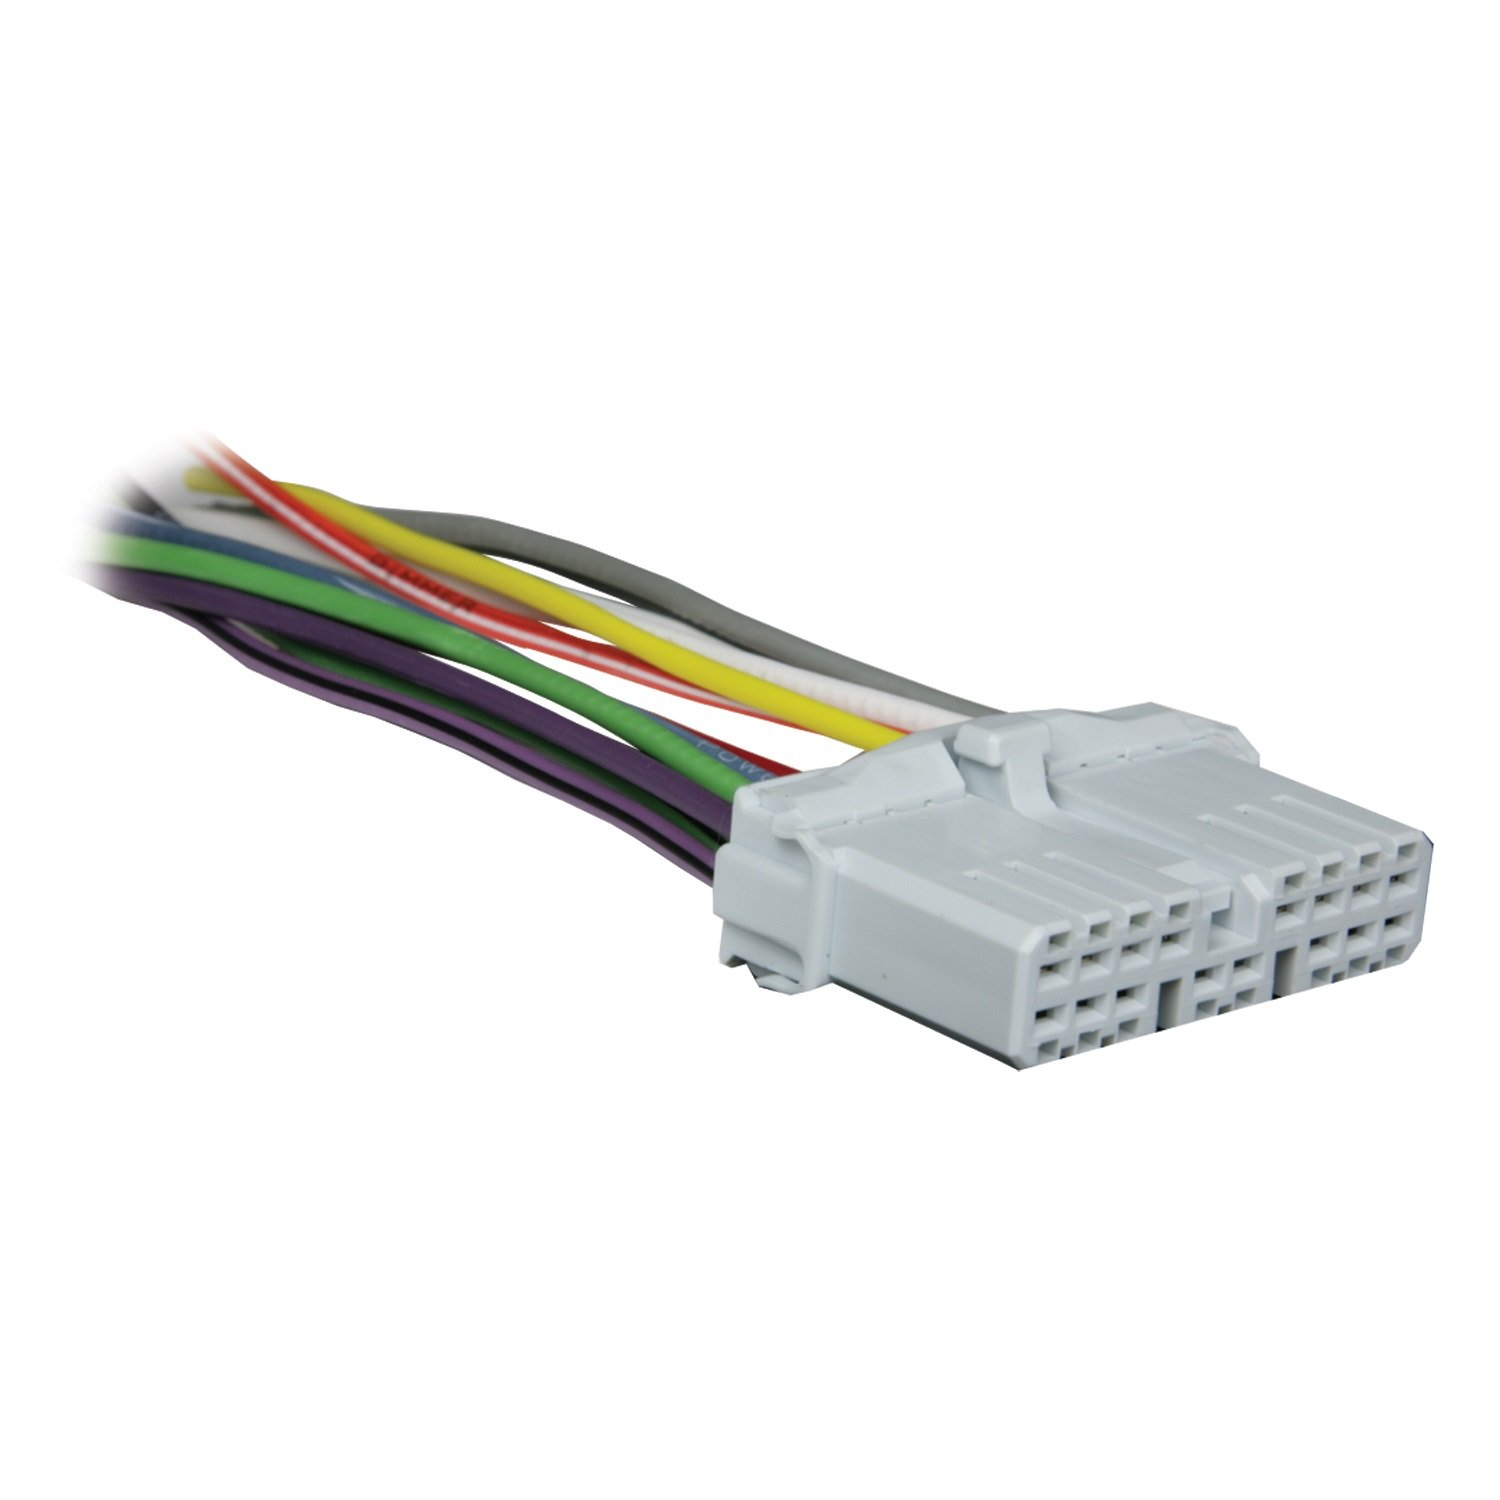 613QdgpH1YL._SL1500_ amazon com metra 71 1720 reverse wiring harness for 1986 1998  at bayanpartner.co